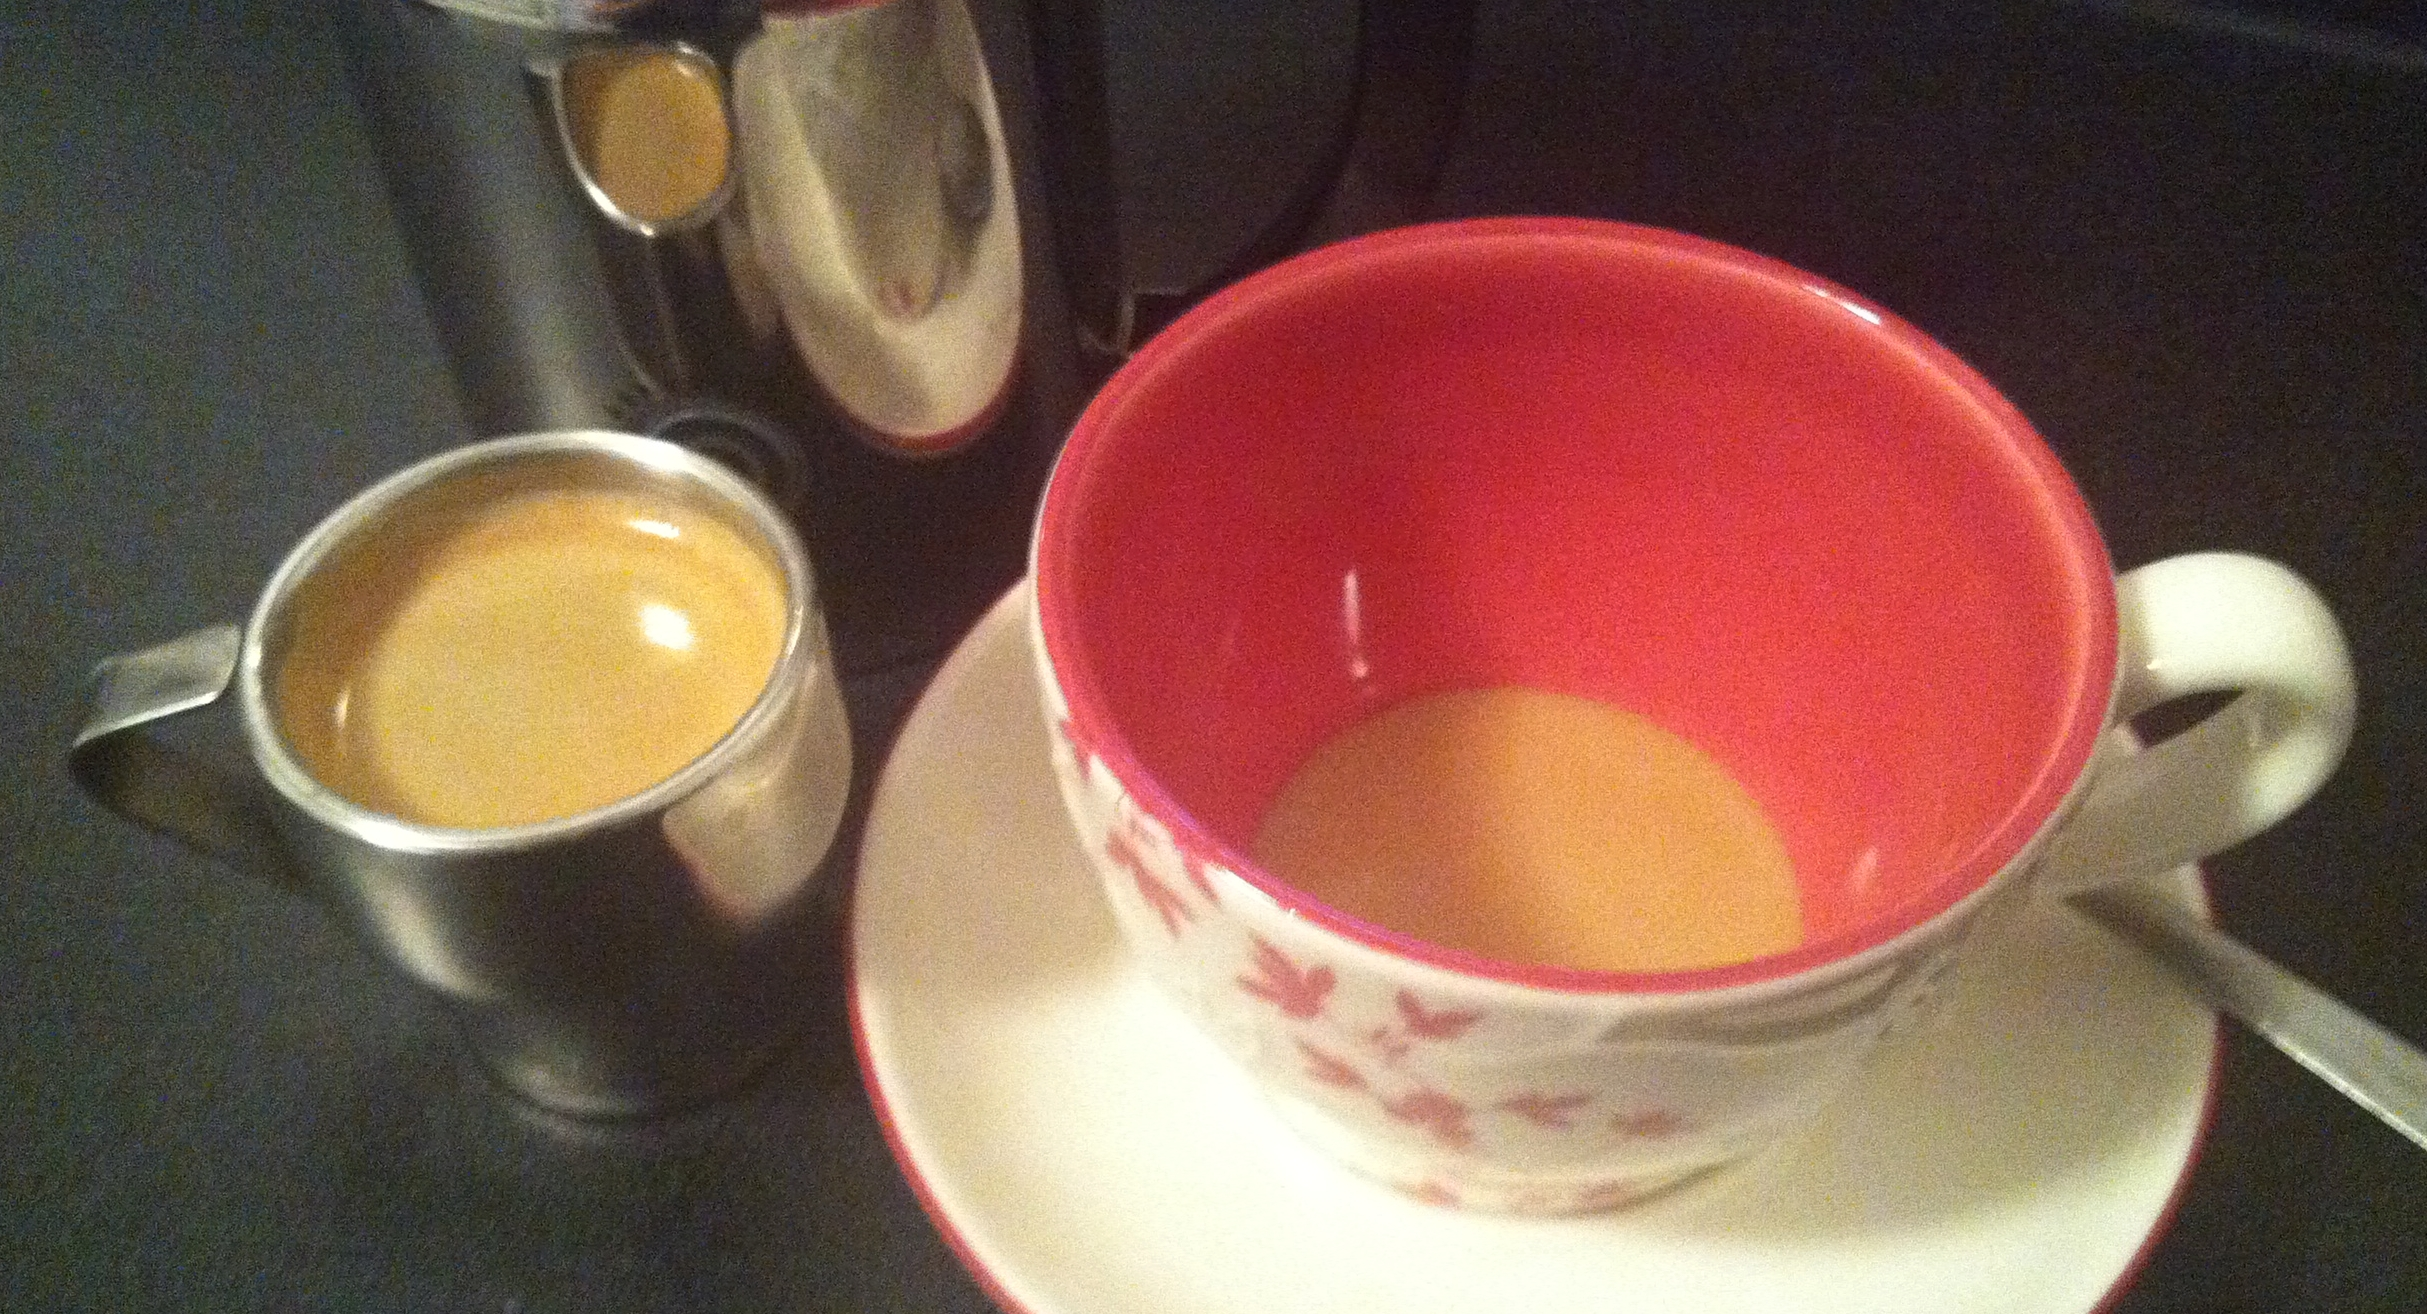 A teaspoon of the syrup in the mug, add a shot of espresso, add frothed milk